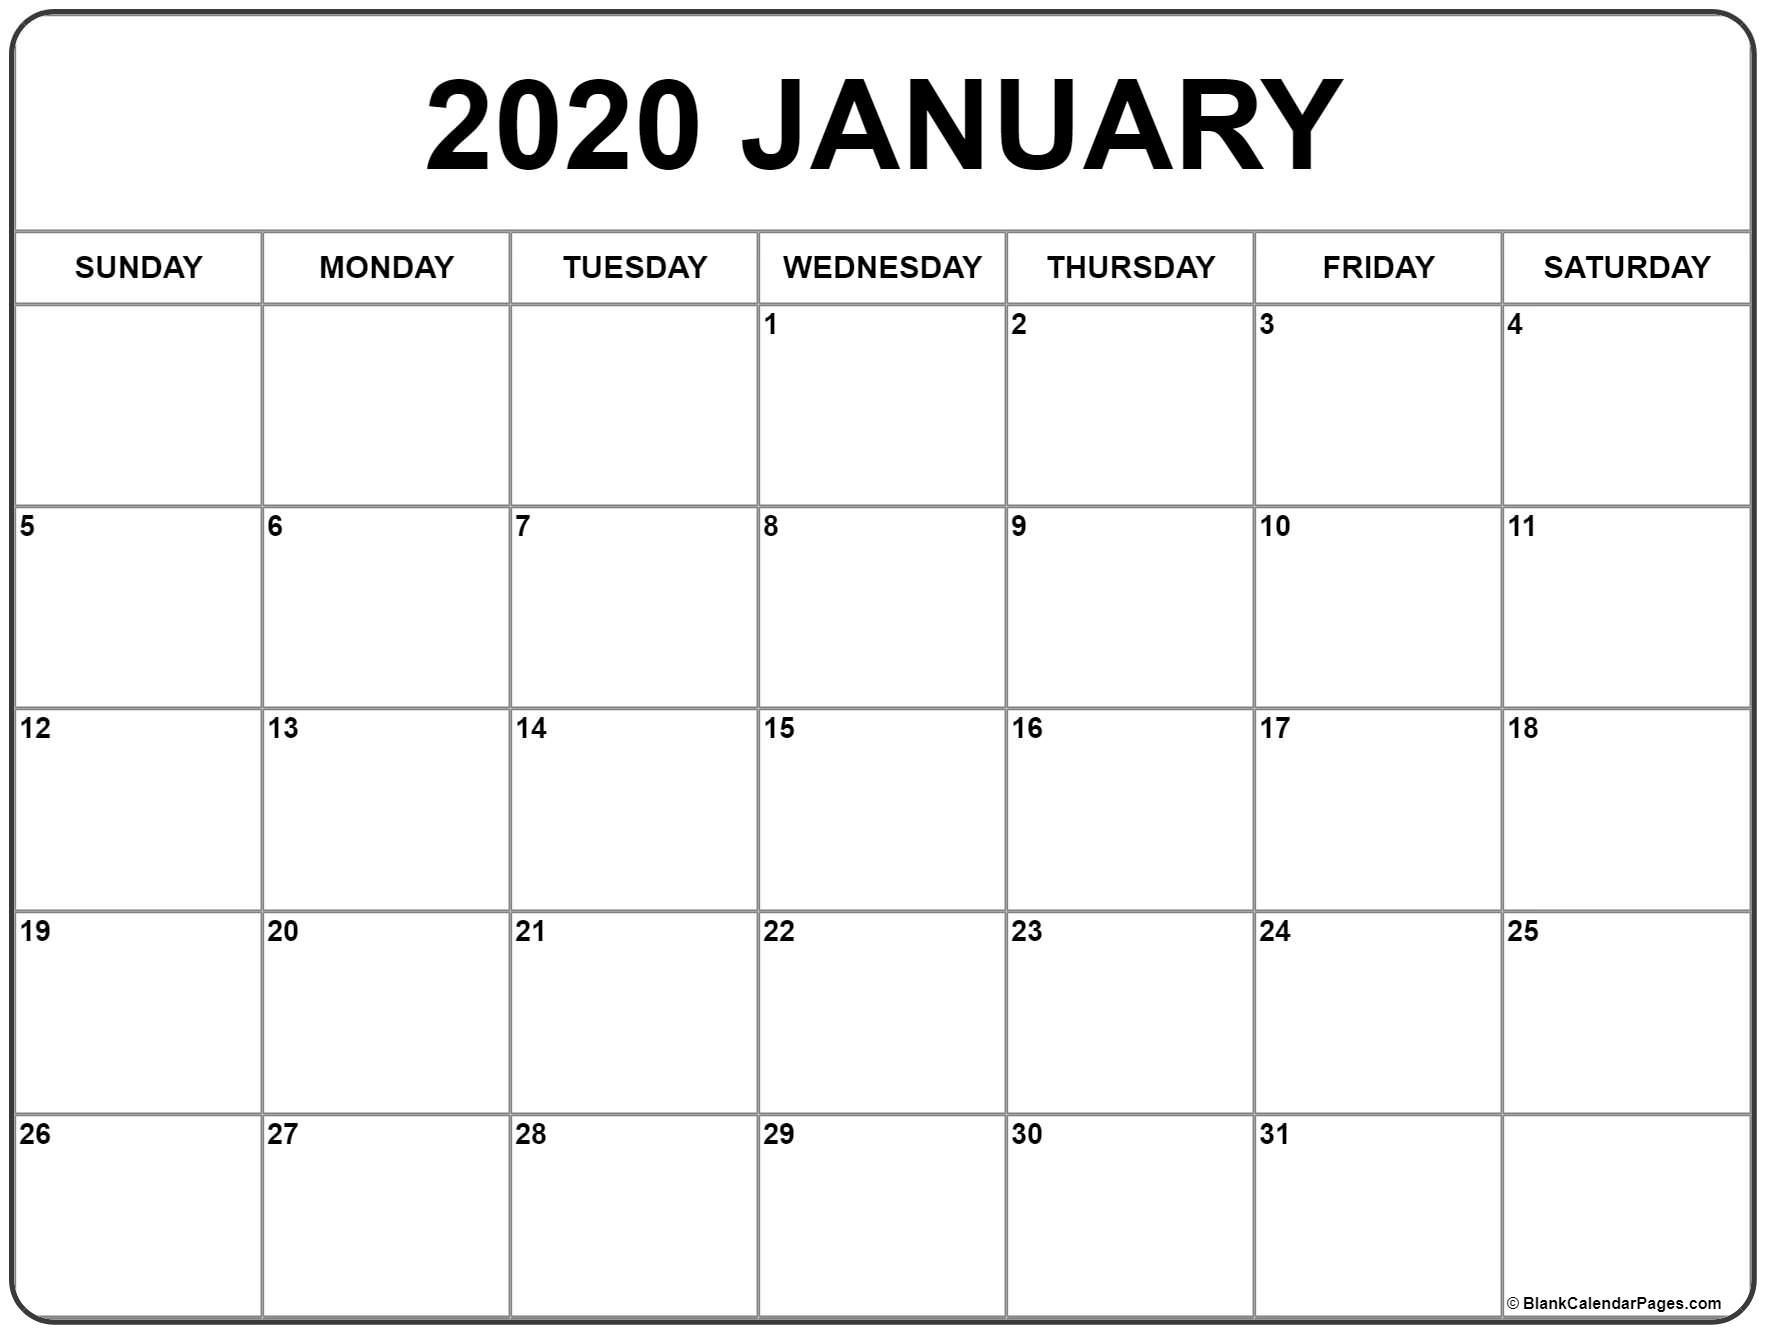 January 2020 Calendar | Free Printable Monthly Calendars-Monthly Planner June July August2020